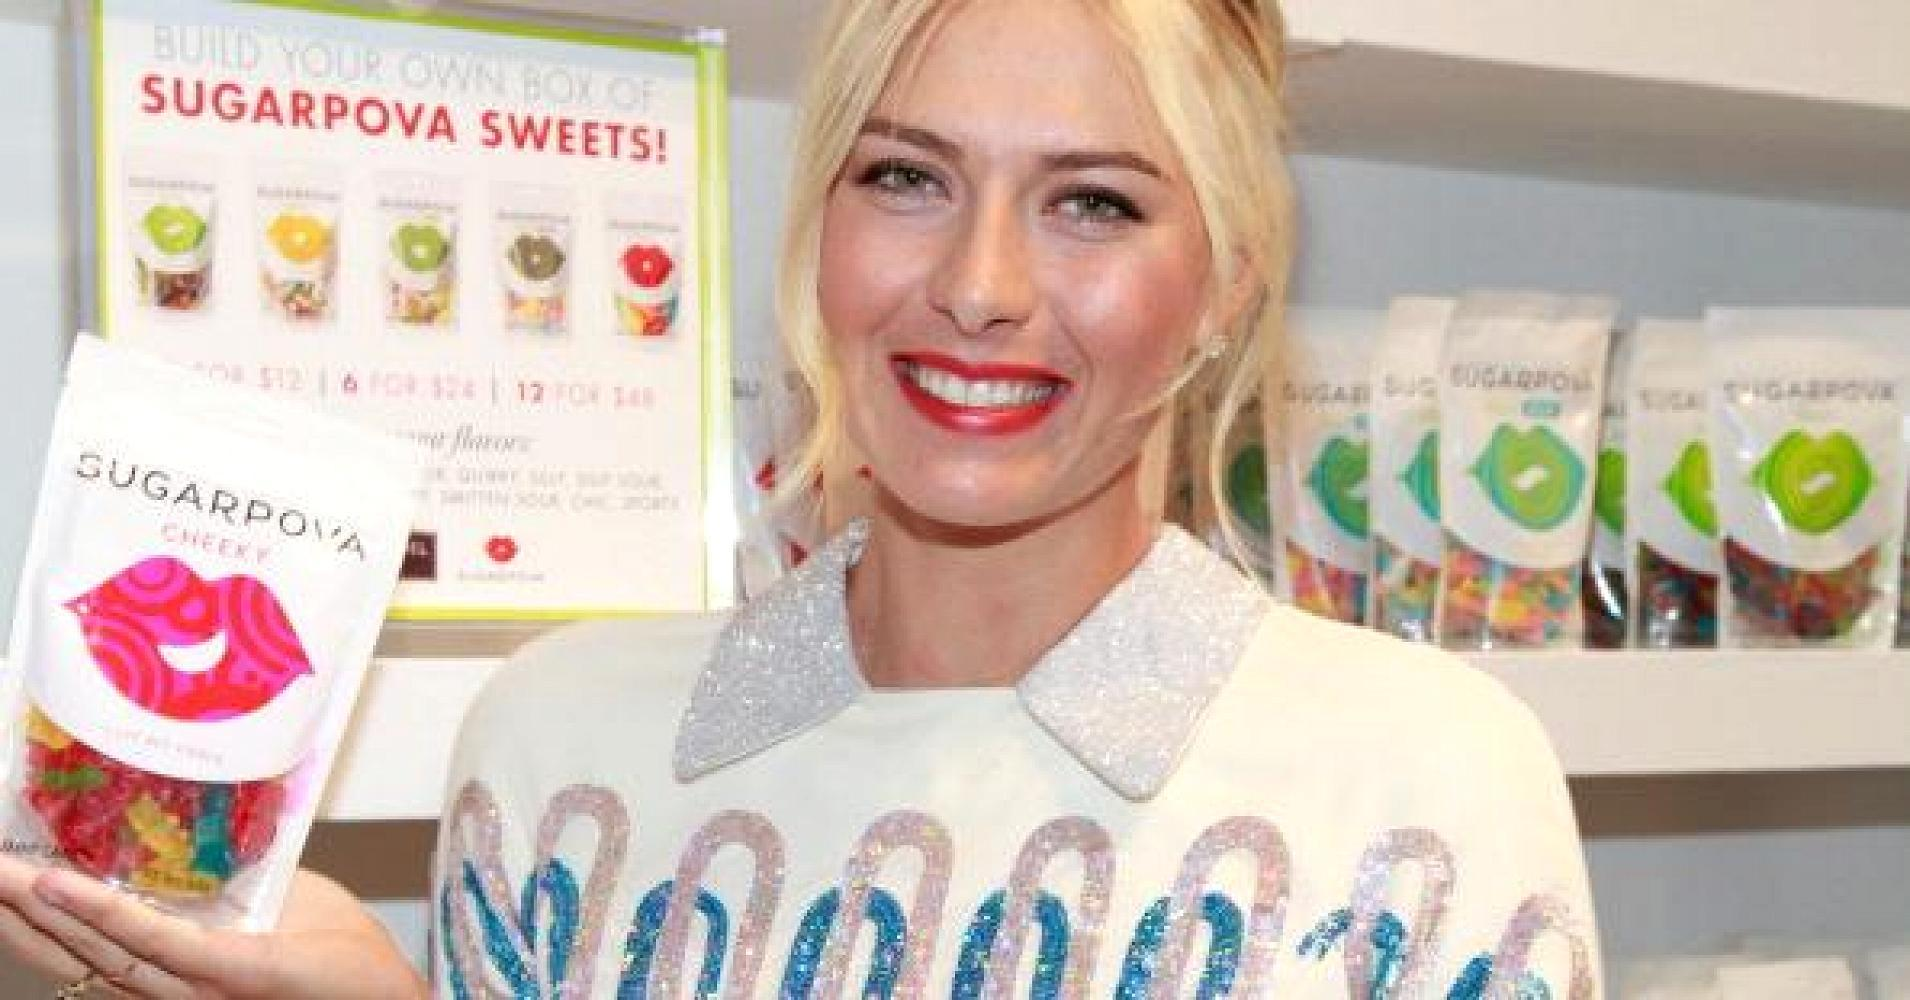 Criticism of my candy business is unfair: Sharapova